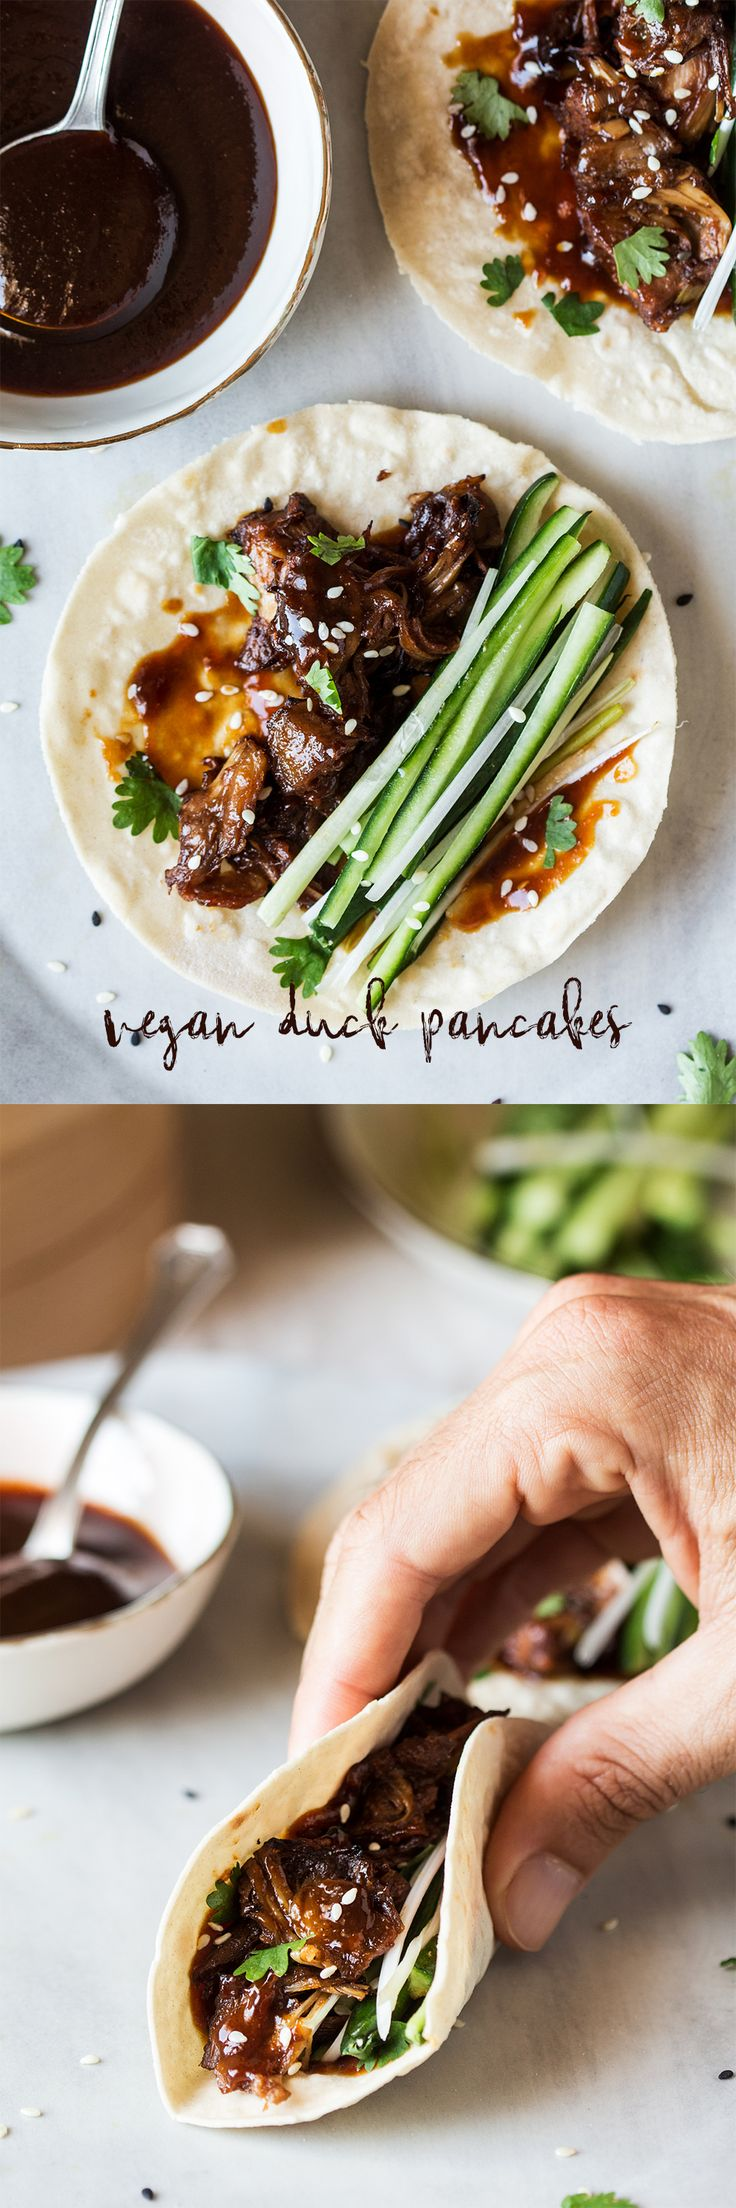 """This is titled """"vegan duck pancakes"""". I don't even know where to start"""